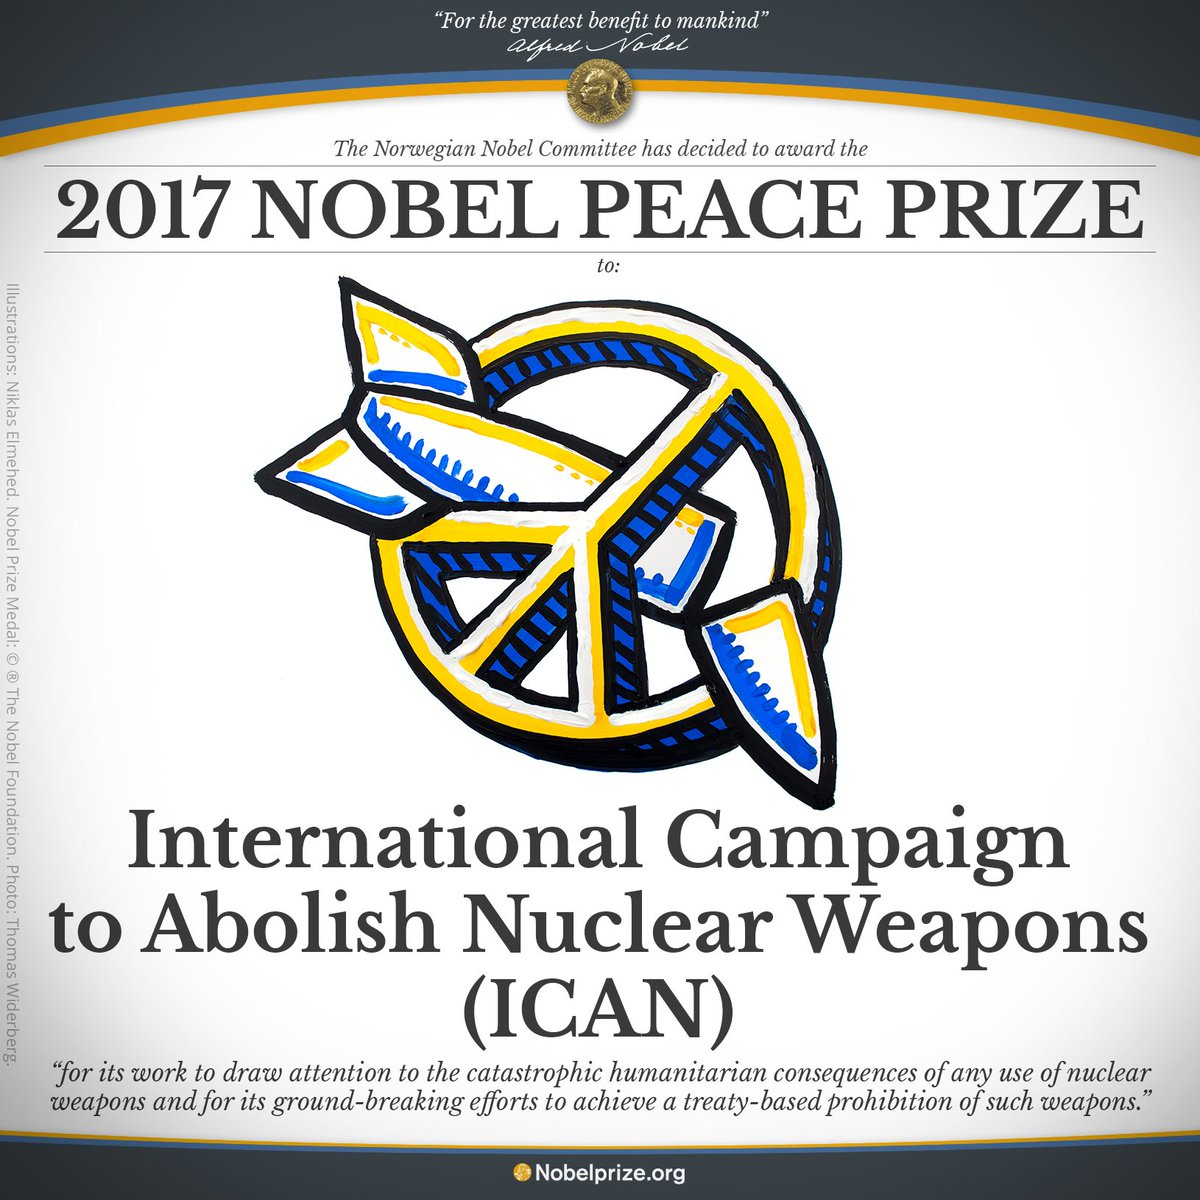 BREAKING NEWS The 2017 Nobel Peace Prize is awarded to the International Campaign to Abolish Nuclear Weapons (ICAN) @nuclearban #NobelPrize